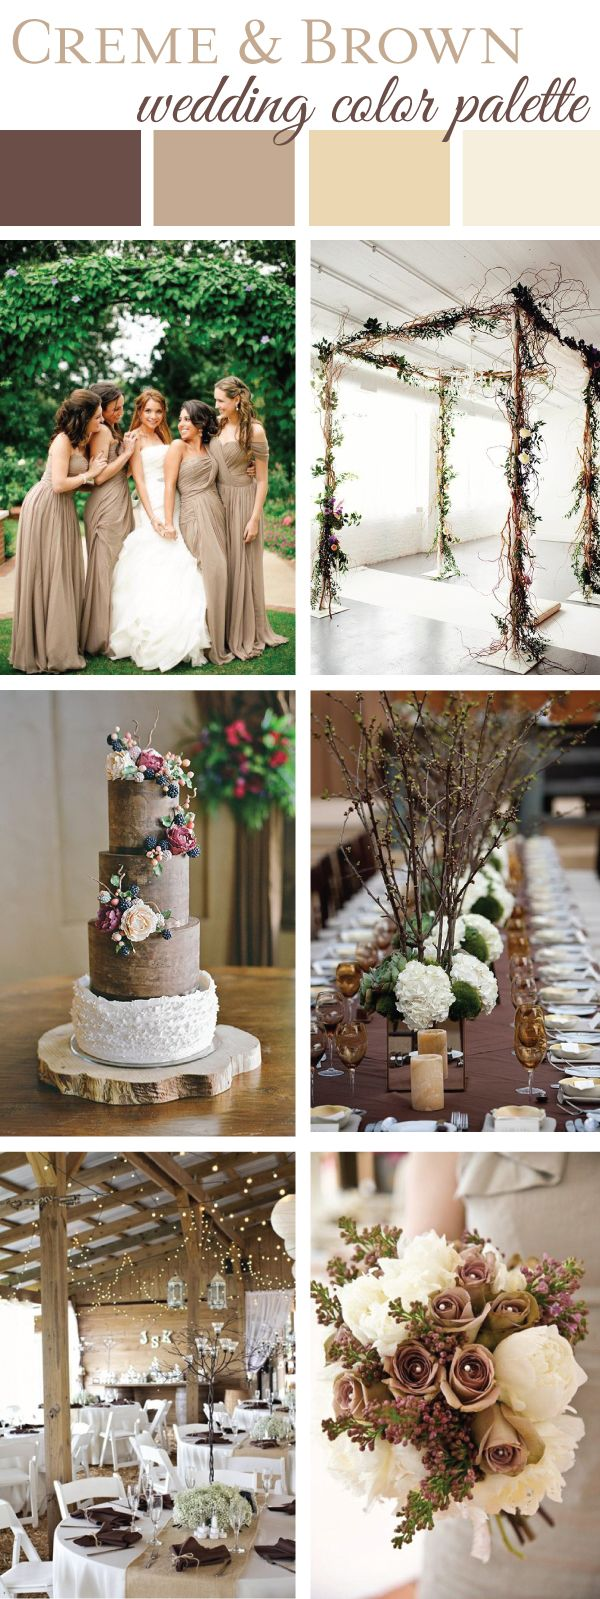 This natural creme and brown wedding color palette is a must-see! What sets this palette apart is the focus on organic vibes and rustic elements. Coordinating ivory, tan, beige and brown tones together creates a perfected contrast that's soft on the eyes. Natural branches and floral accents blend with the natural ambience